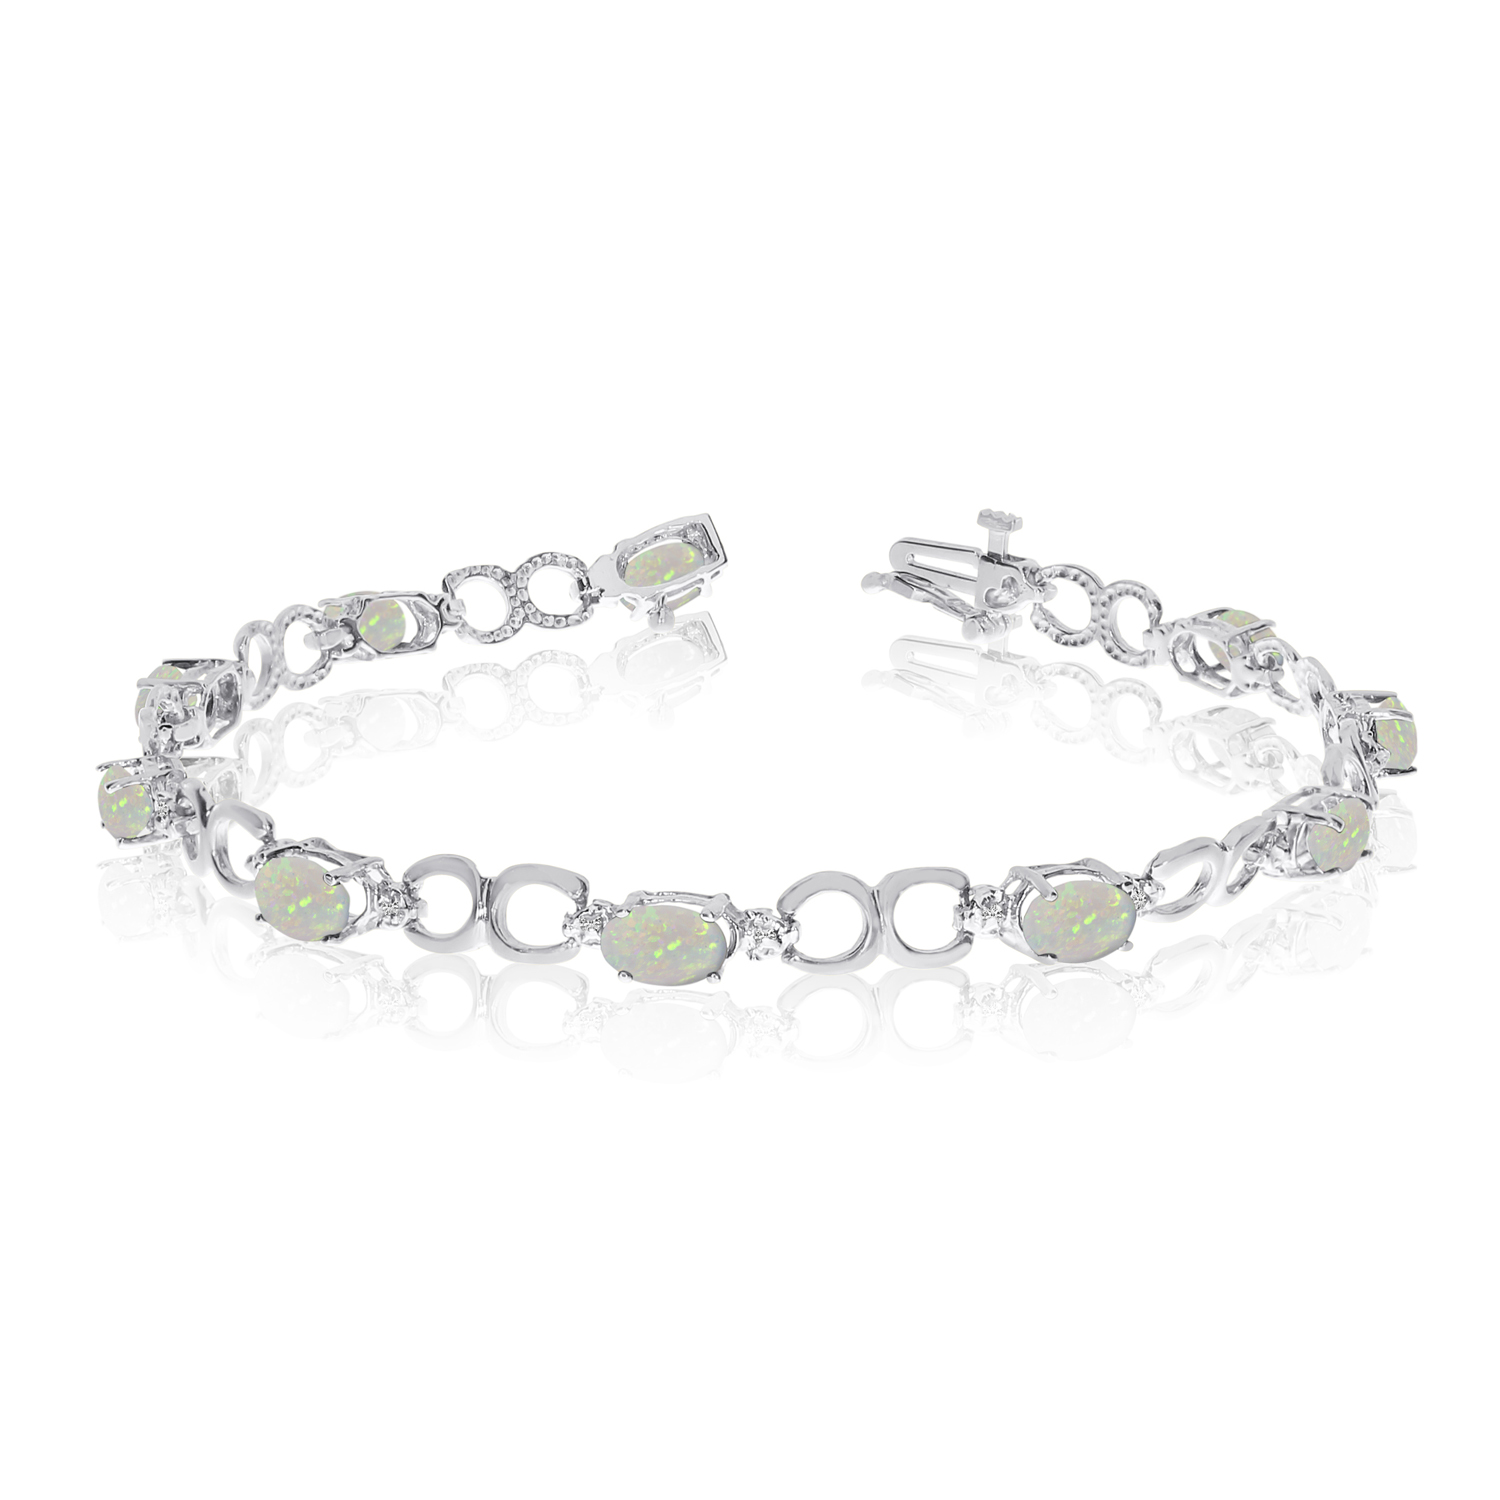 10K White Gold Oval Opal and Diamond Bracelet by LCD